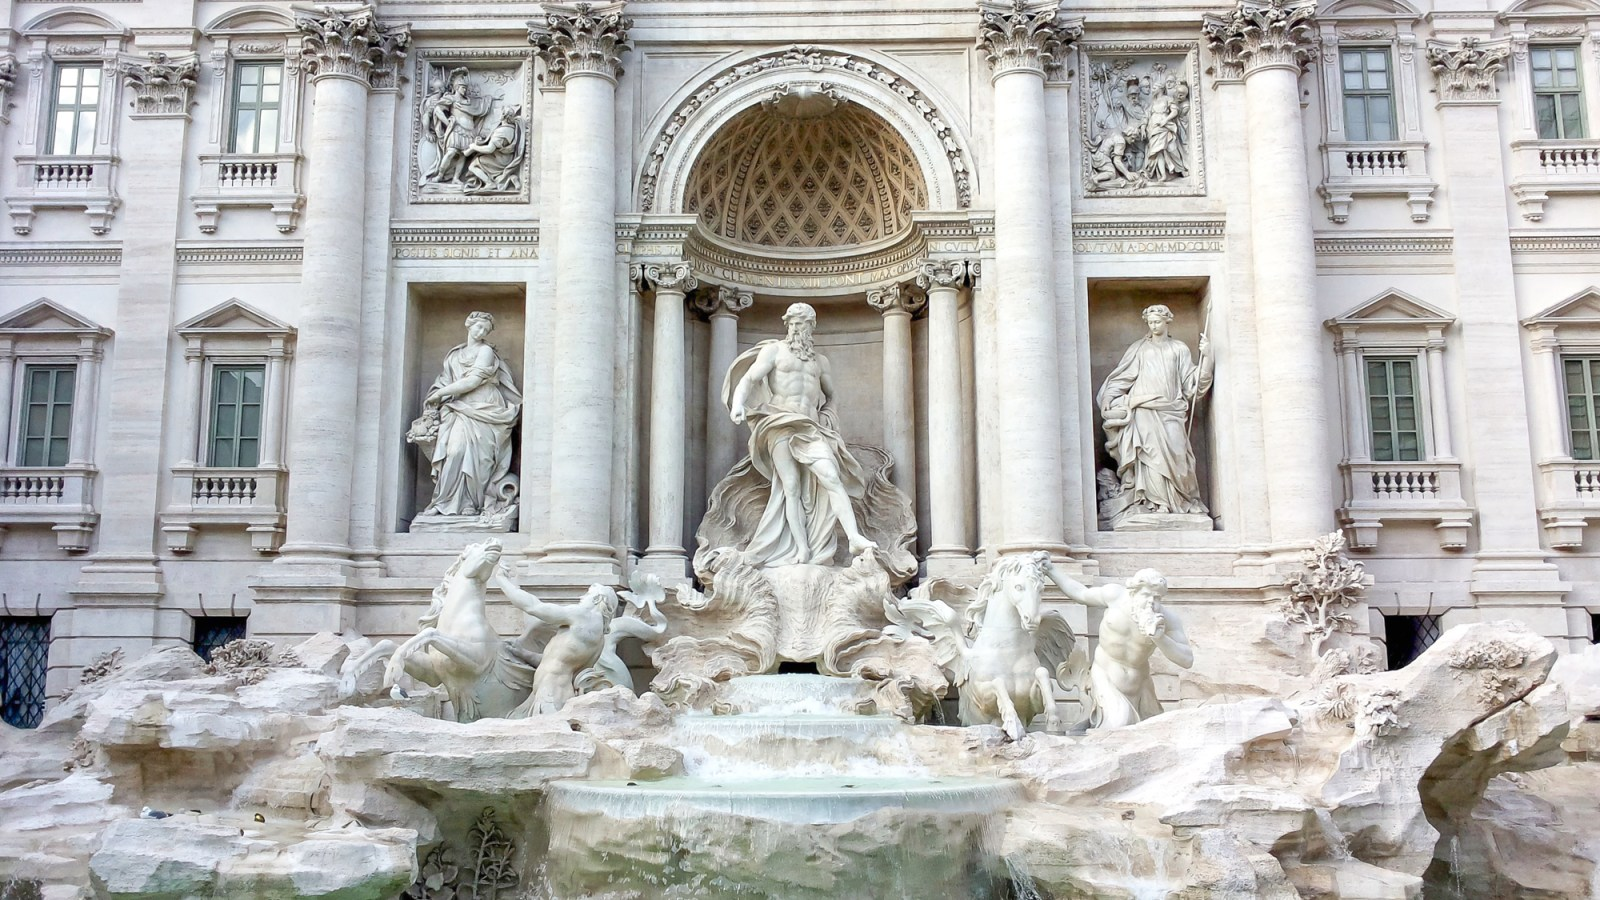 2 days in Rome, Italy (Day 2) | Highlights and Night Sights | Spanish Steps | Trevi Fountain | Pantheon | Piazza Navona | gelato | Colosseum | Vatican | St. Peter's Basilica | Night tour of Rome | What to do in Rome | What to see in Rome | Where to go in Rome | Free walking tour of Rome |